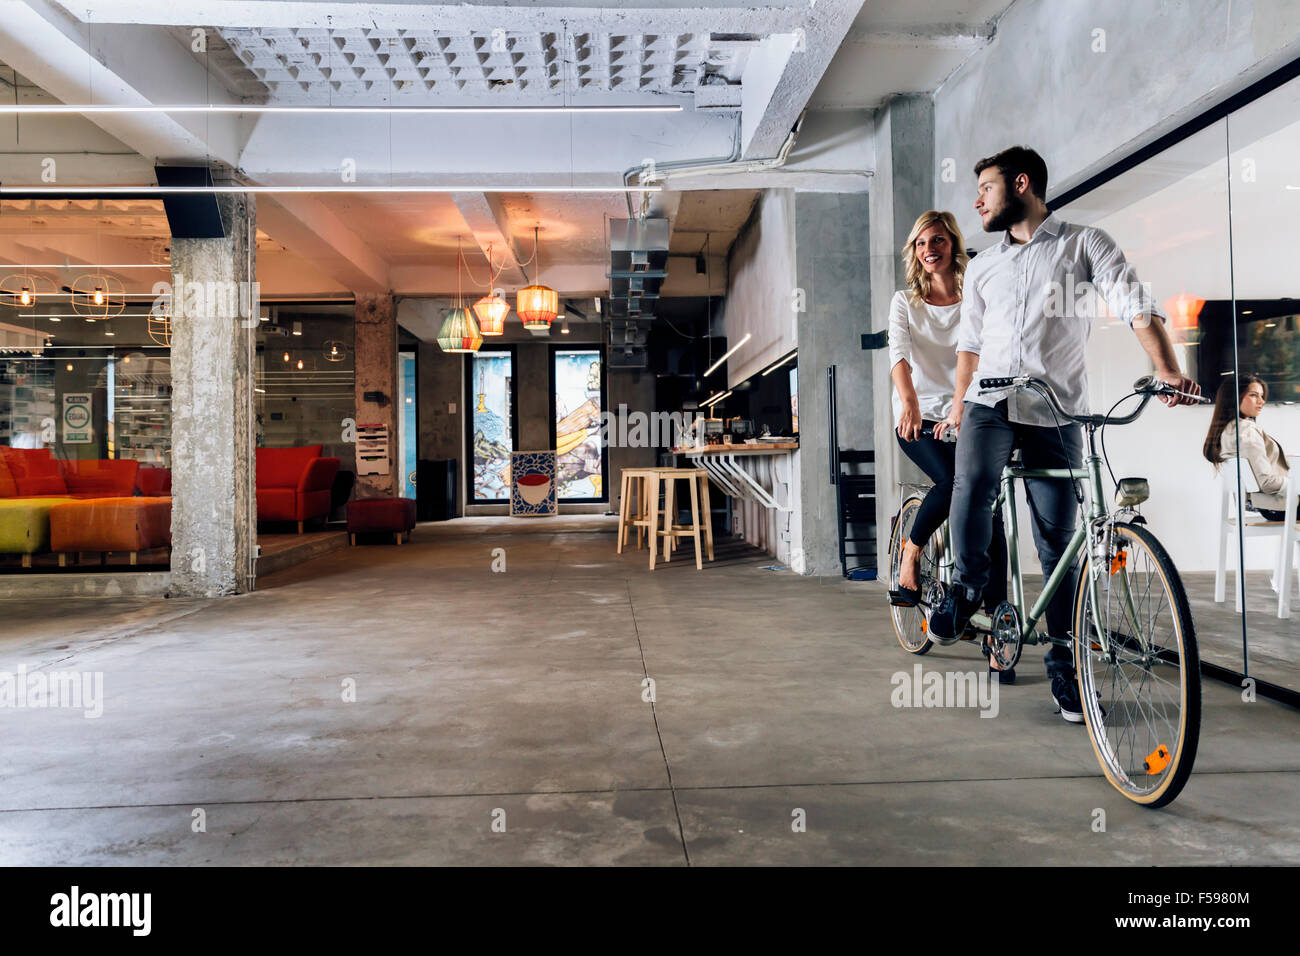 Business people on twin bicycle with mutal goals and same vision in business - Stock Image